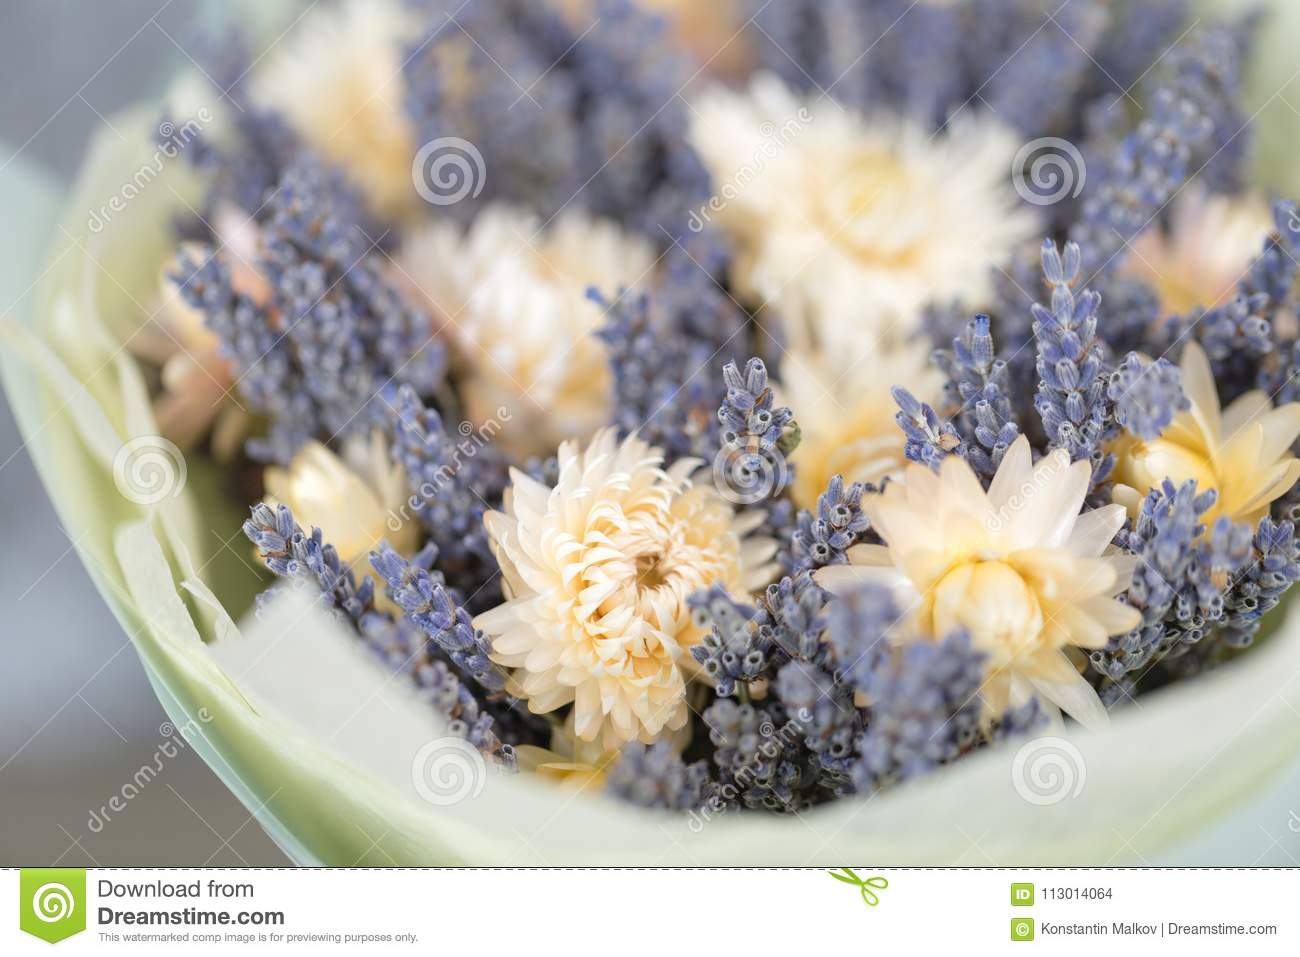 Bouquet Of Lavender And Dry Flowers Colorful Summer Bunch Of Purple Lavender And Yellow Chamomile Flowers Stock Photo Image Of Blossom Detail 113014064